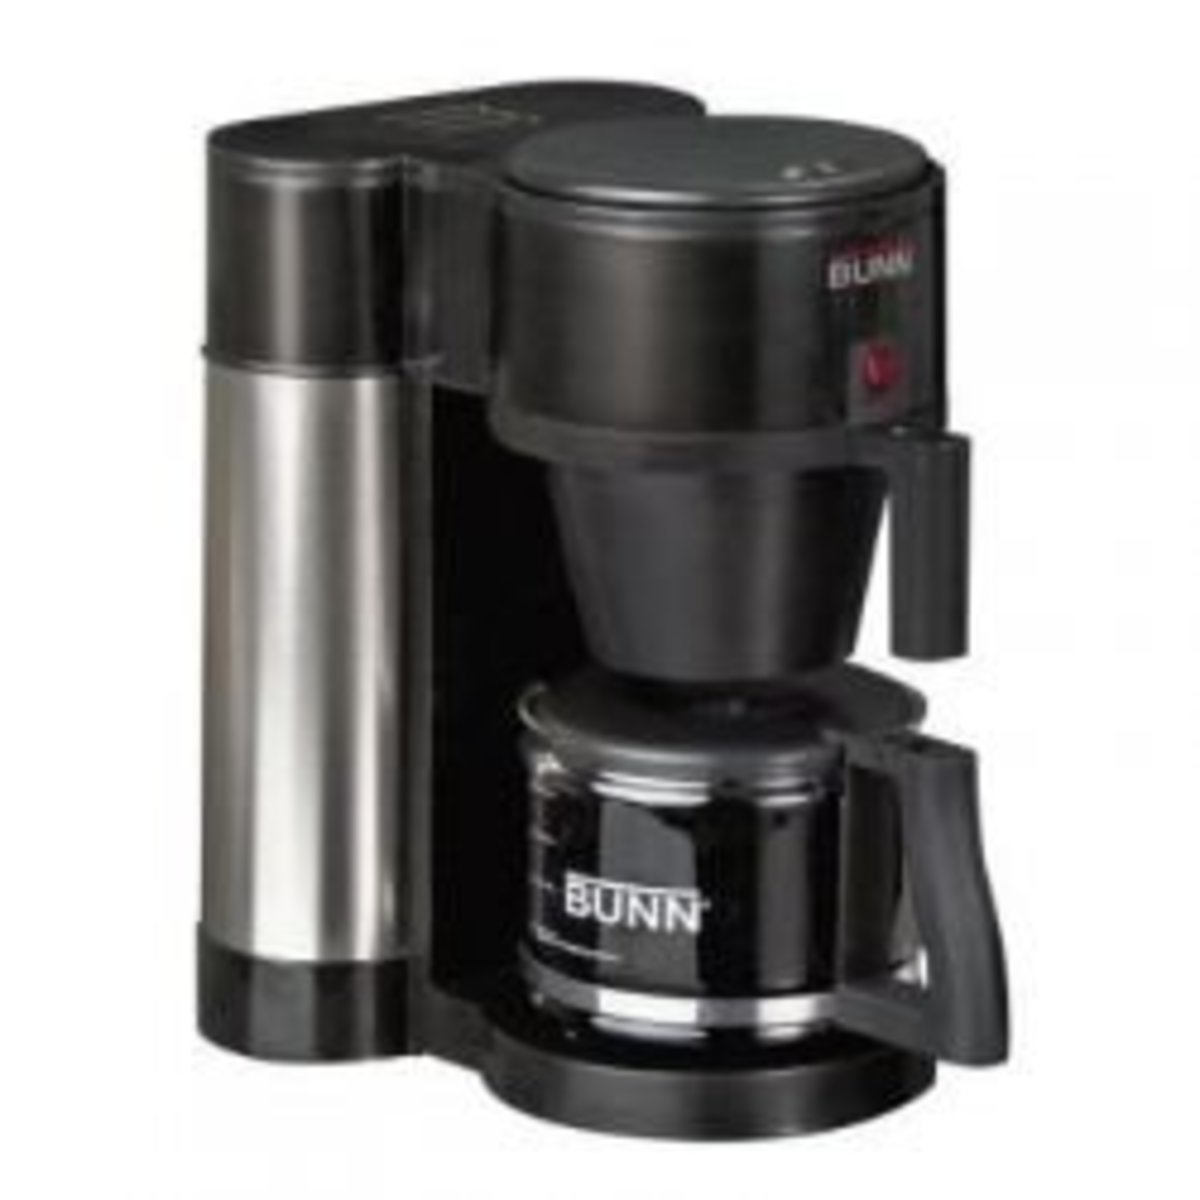 Top Five Best Coffee Makers